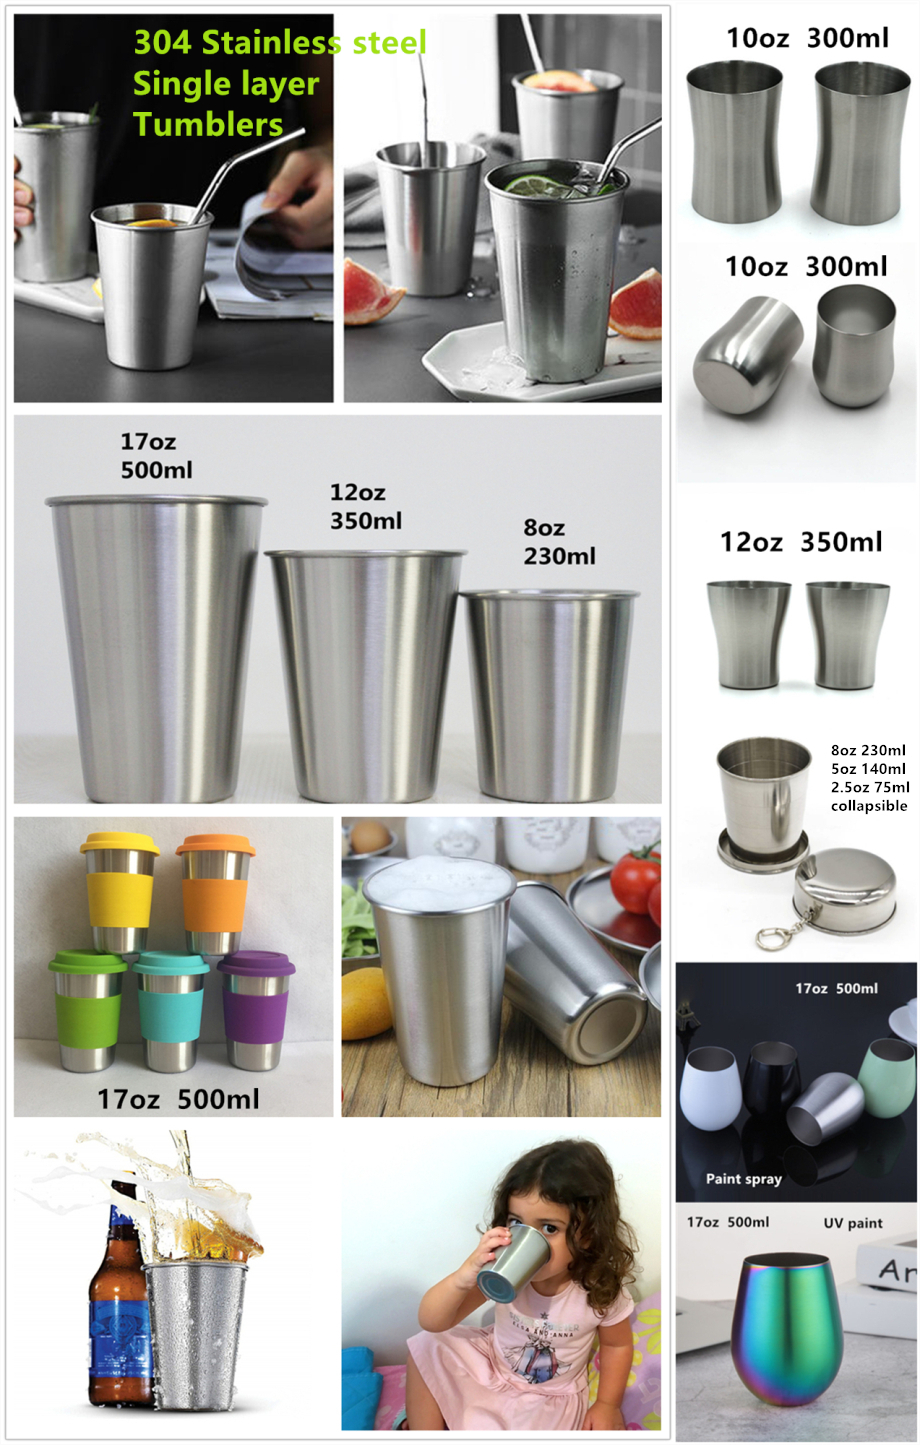 304 Stainless steel tumbler single wall mug wine beer coffee water glass egg shaped cup collapsible portable full-range sizes 20oz to 2oz